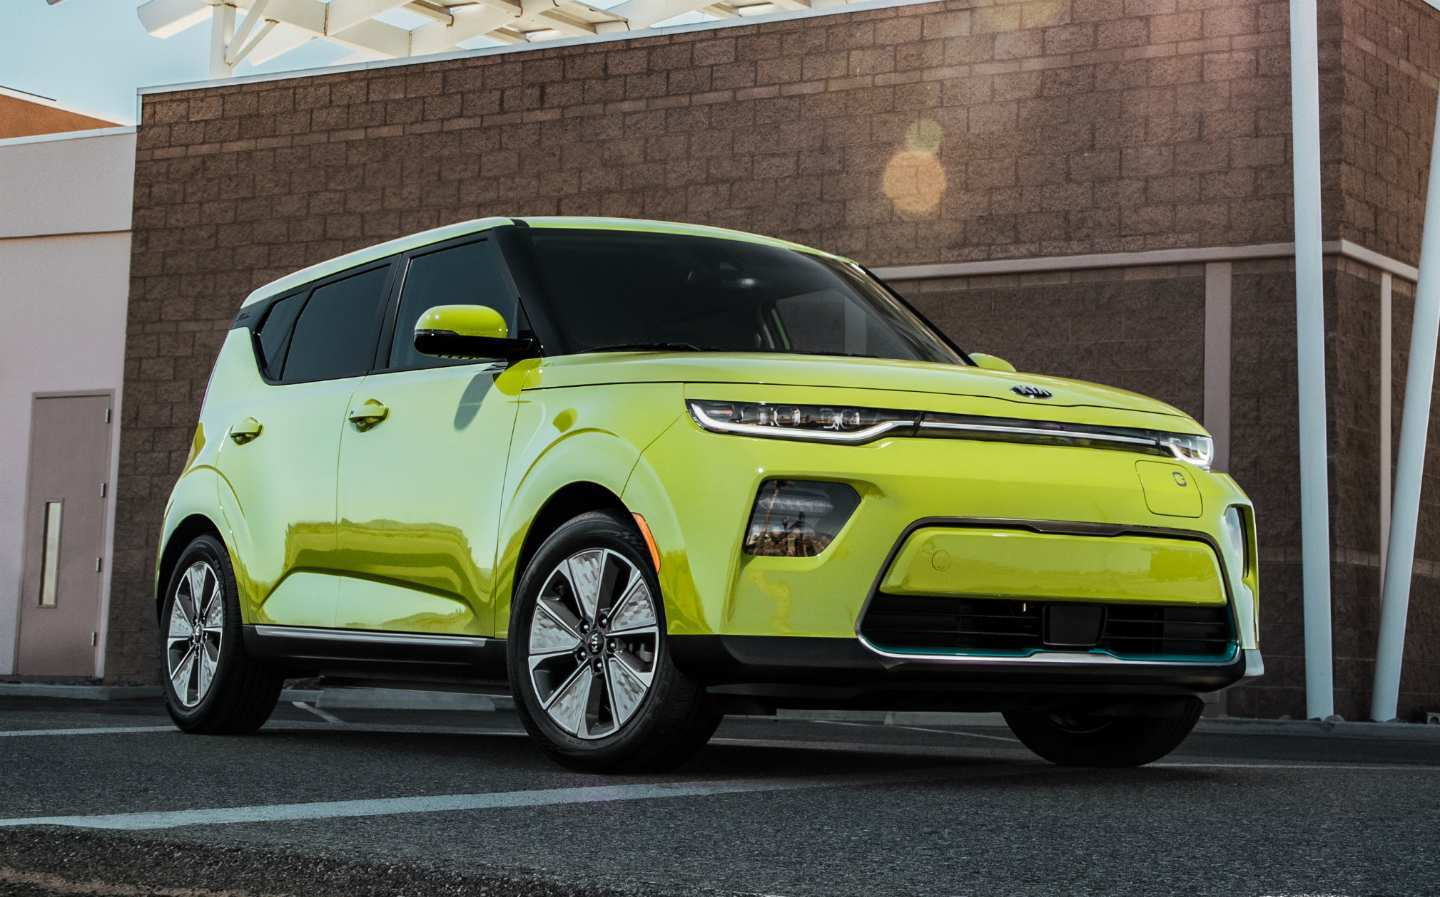 58 All New 2020 Kia Soul Ev Release Date Speed Test